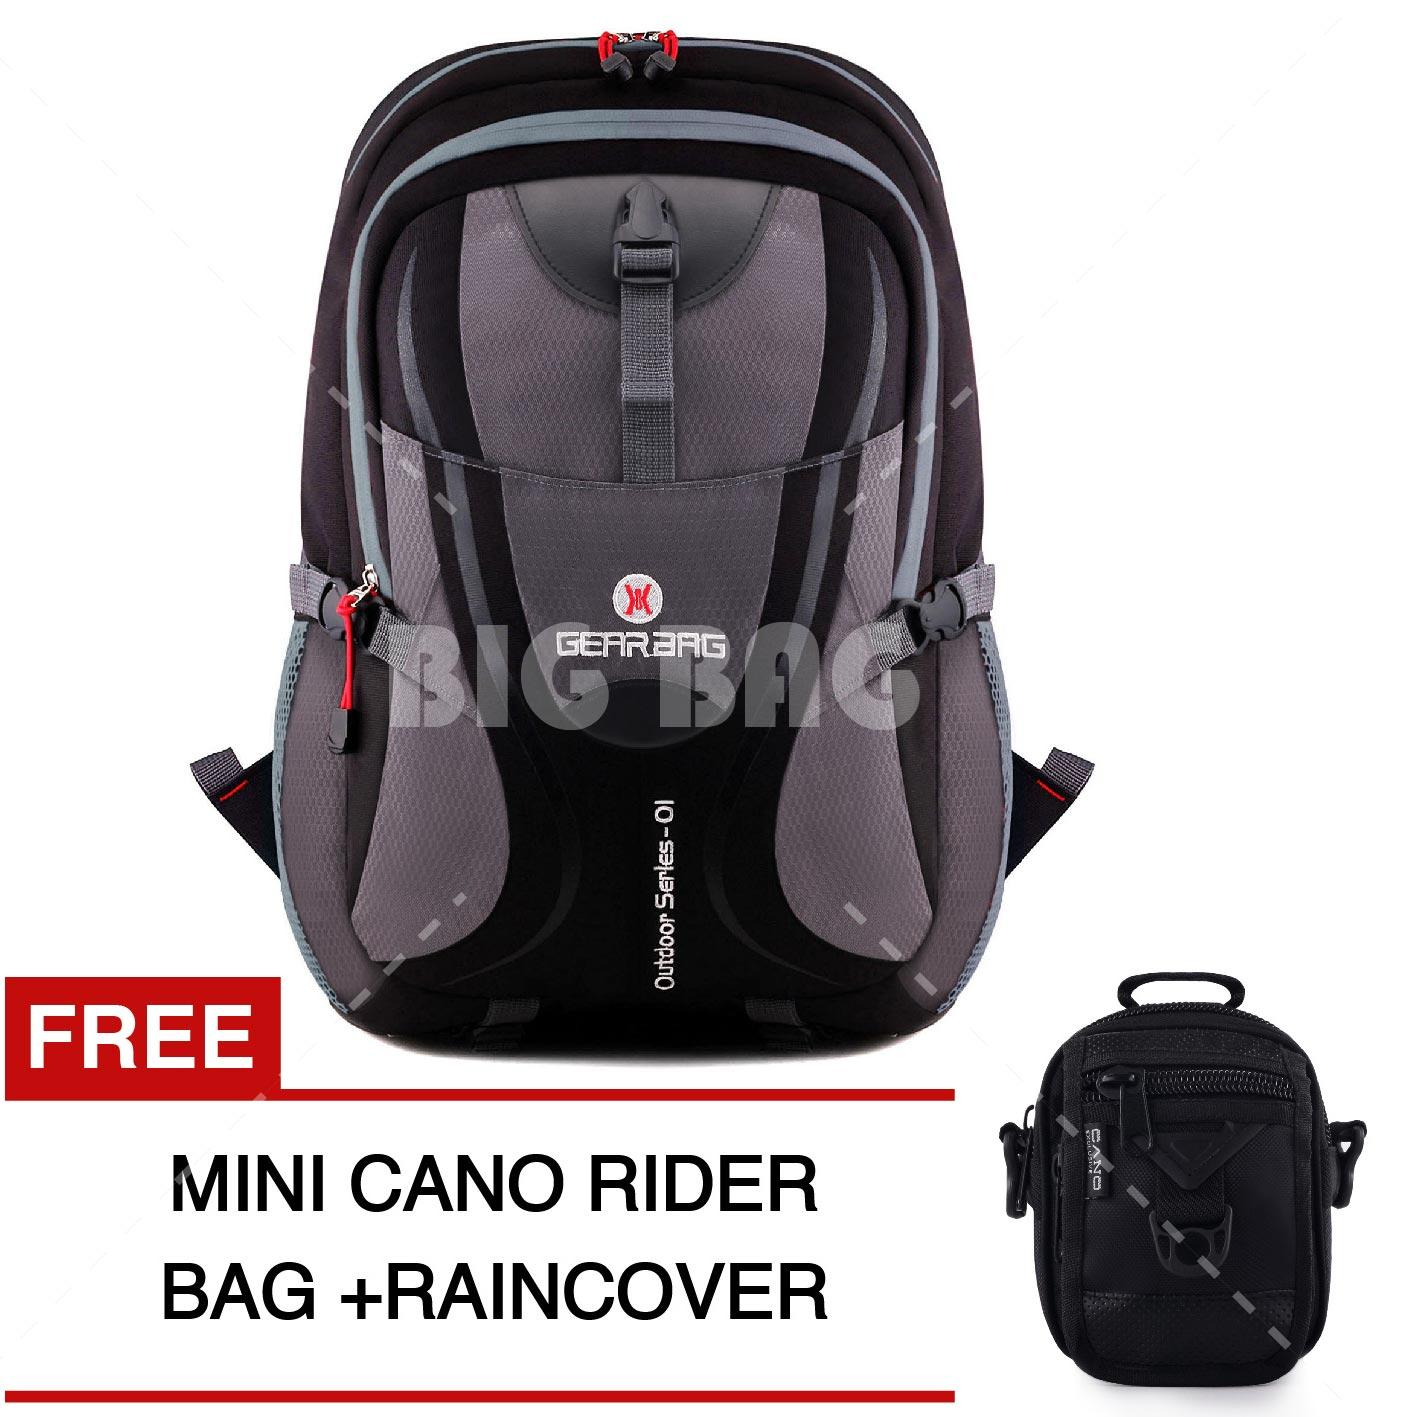 Harga Tas Kerja Pria Murah Terbaru 2018 Waistbag Distro Bandung 01 Paha Laptop Army Outdoor Tapax Ransel Gear Bag Spider X88 Backpack Black Grey Raincover Free Selempang Mini Cano Rider Messenger